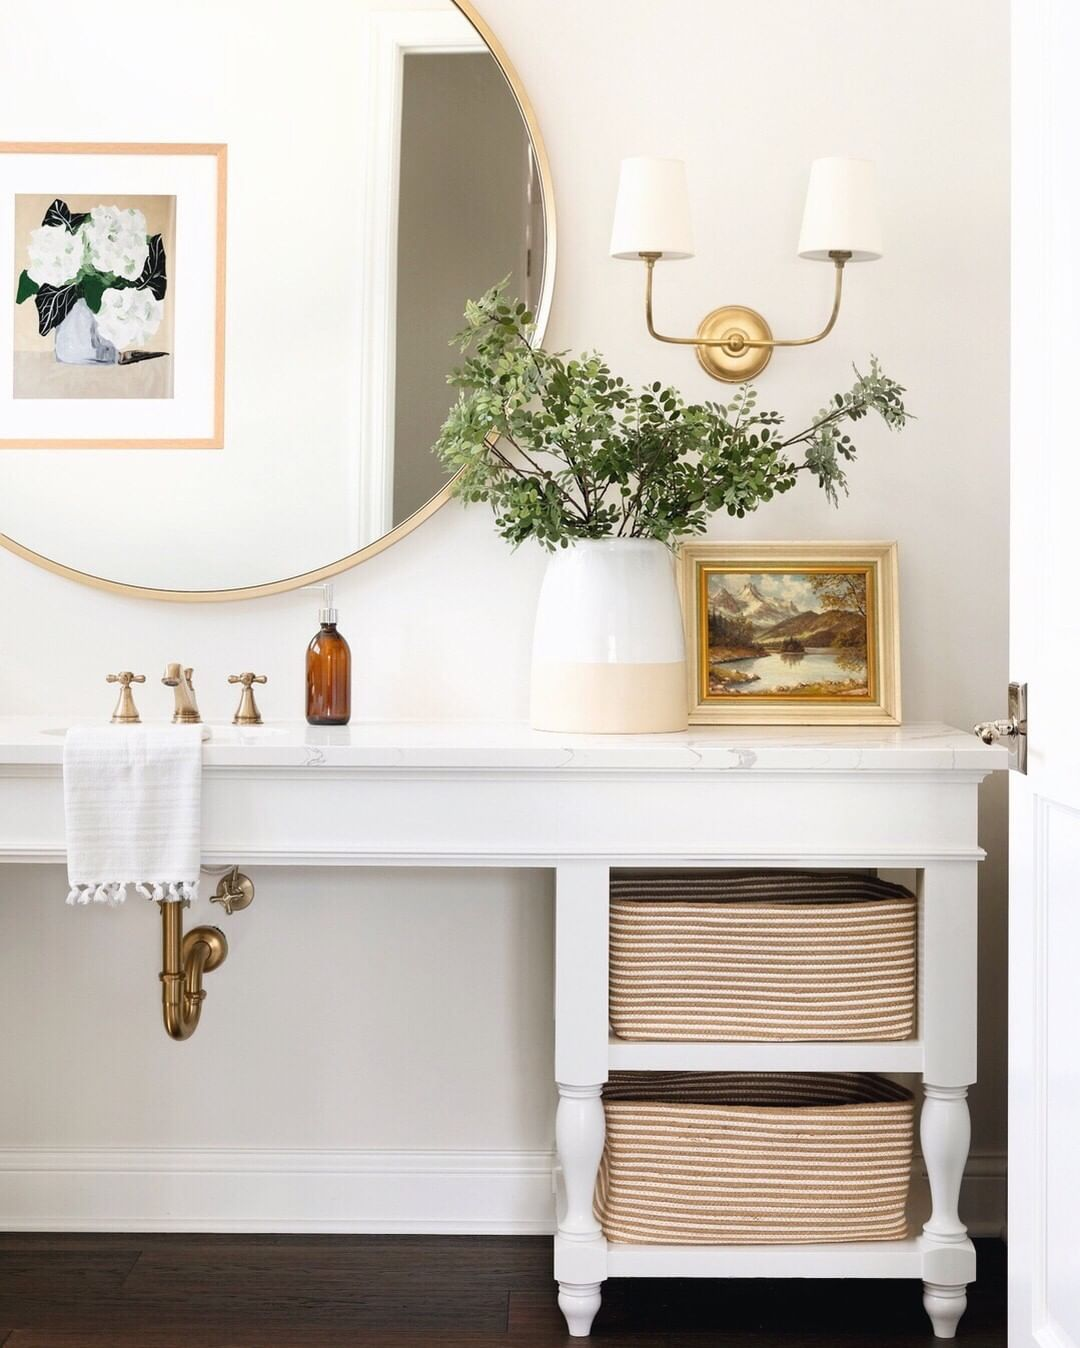 Simple And Sweet Moments From Our Echolakeproject A Bit Of Brass A Touch Of Greenery And A Clean Bright Color Palette Made This Spa Home Decor Decor Home